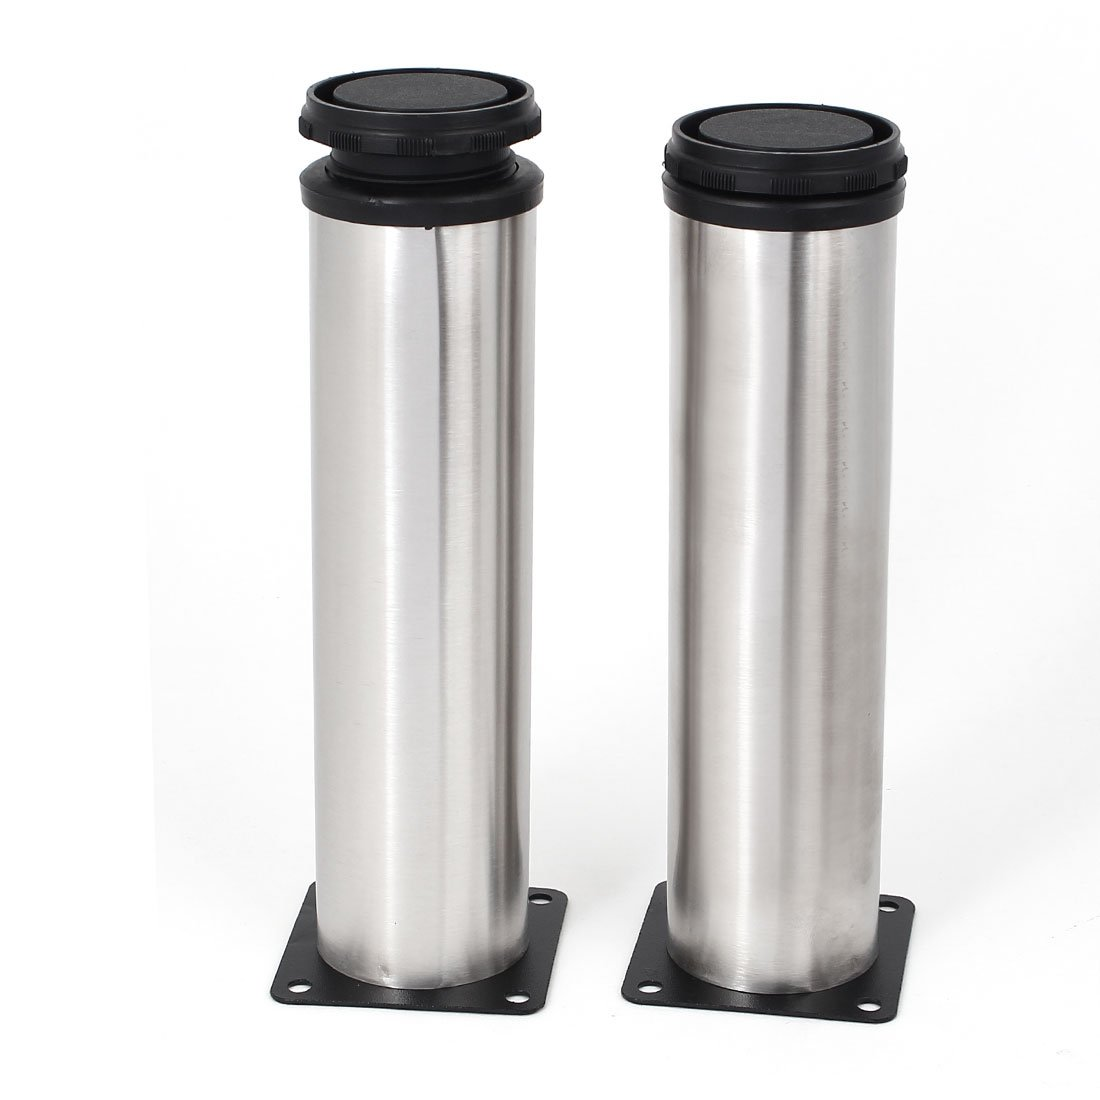 Uxcell a16041500ux1525 Adjustable Cabinet Leg Stainless Steel Adjustable Furniture Cabinet Leg 200Mm Height 2Pcs